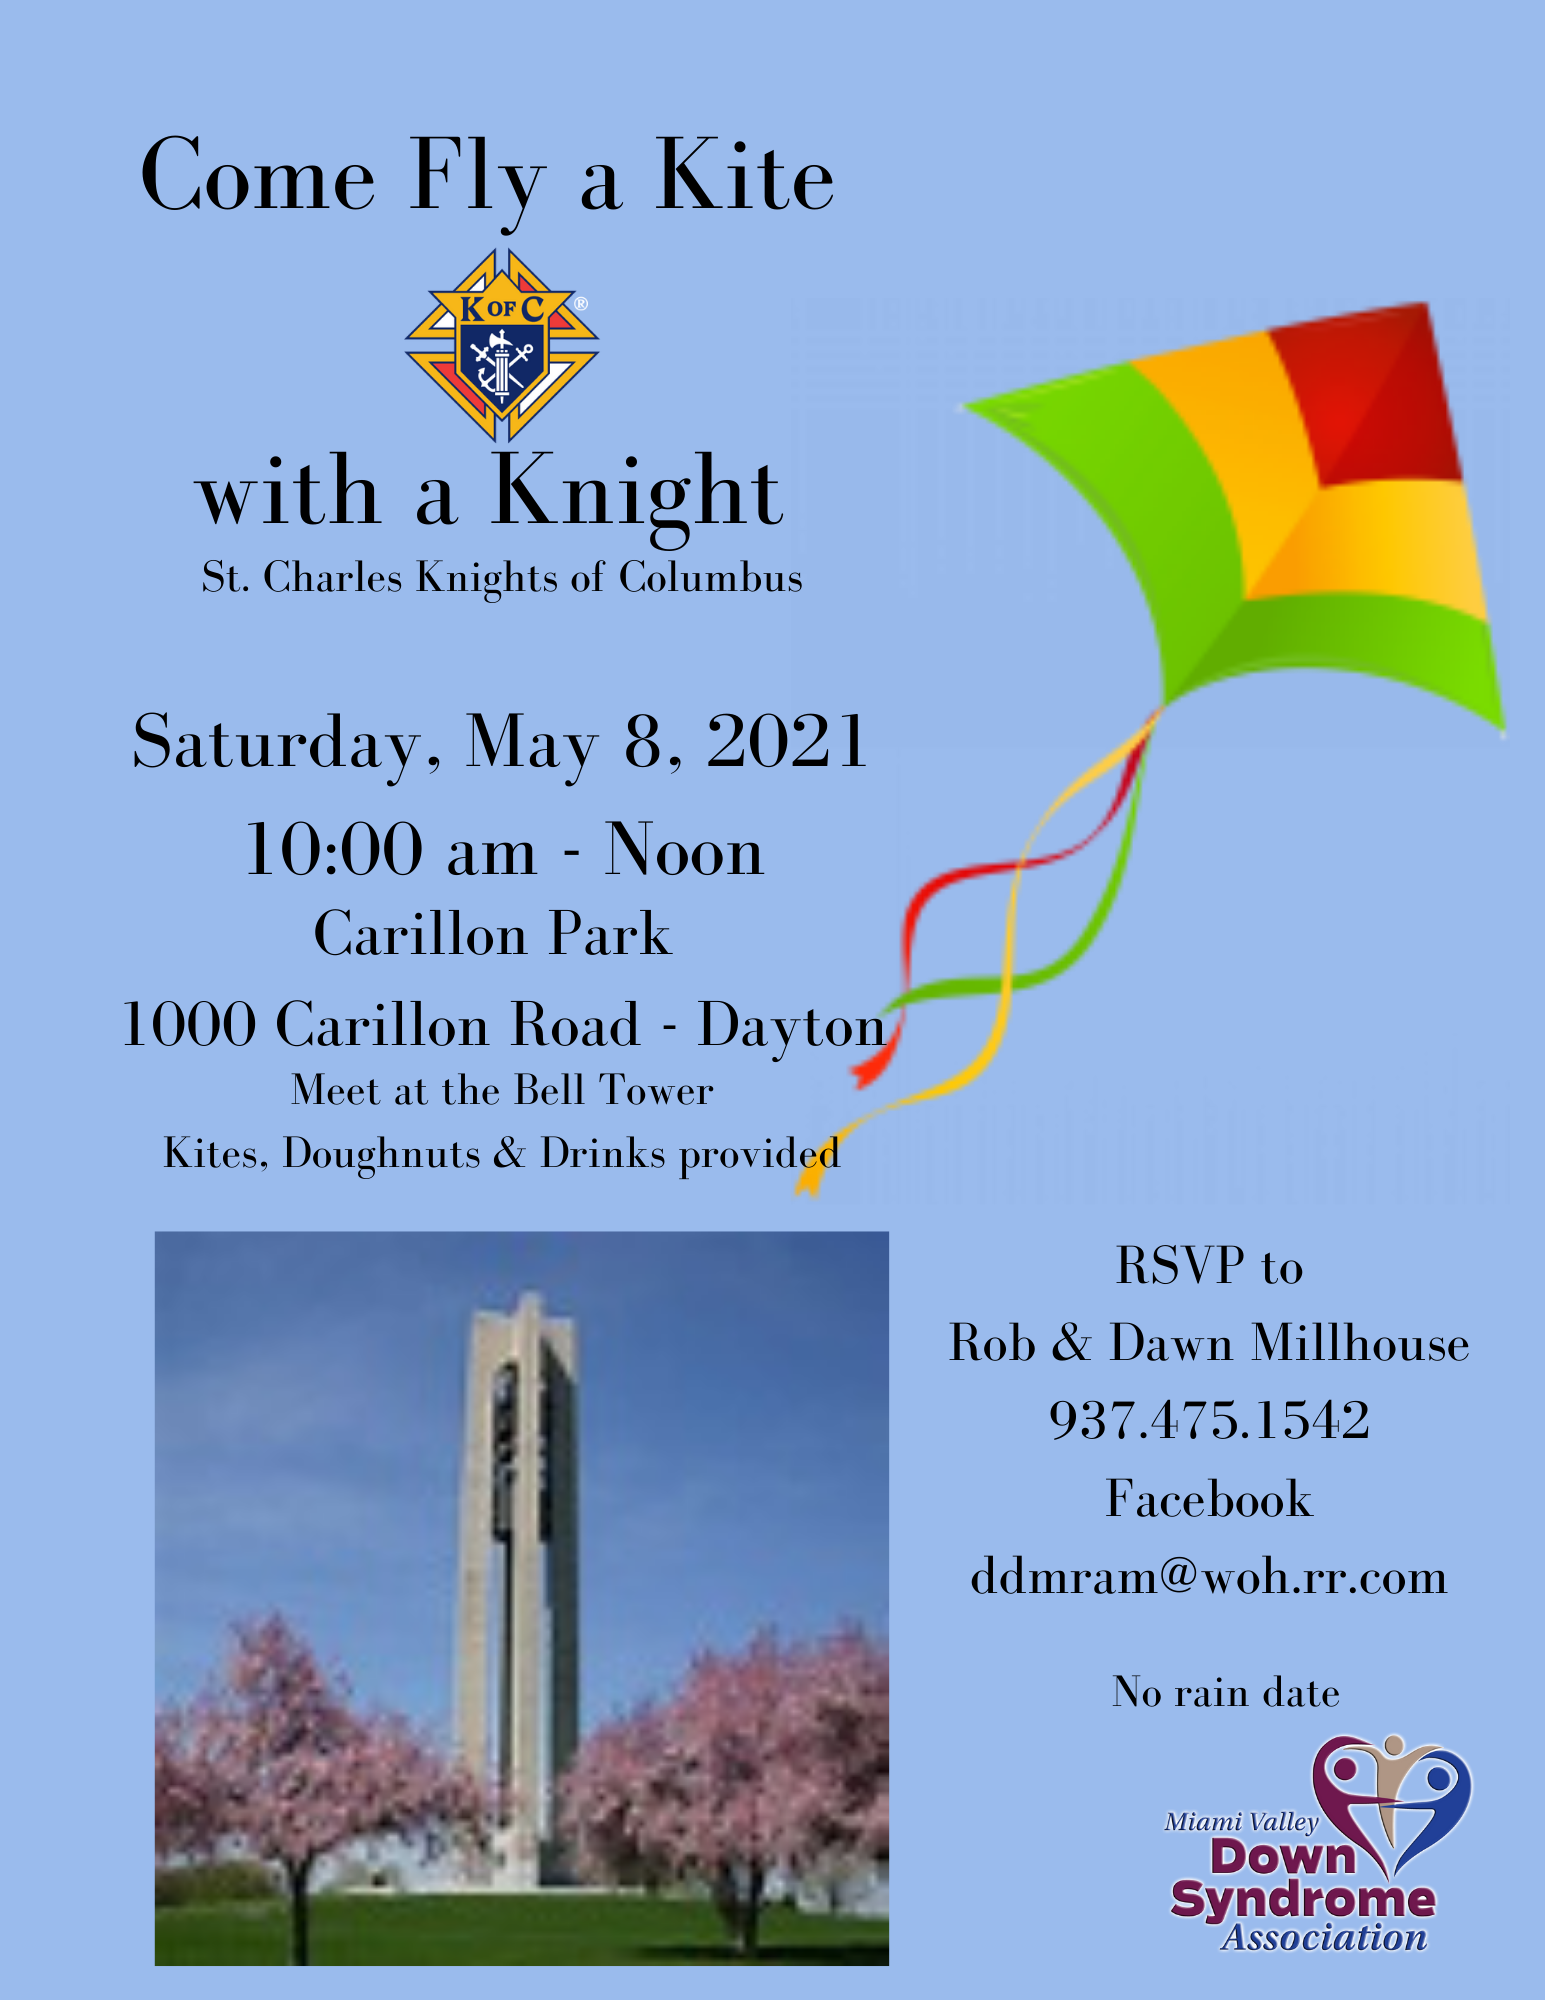 Come Fly a Kite with a Knight